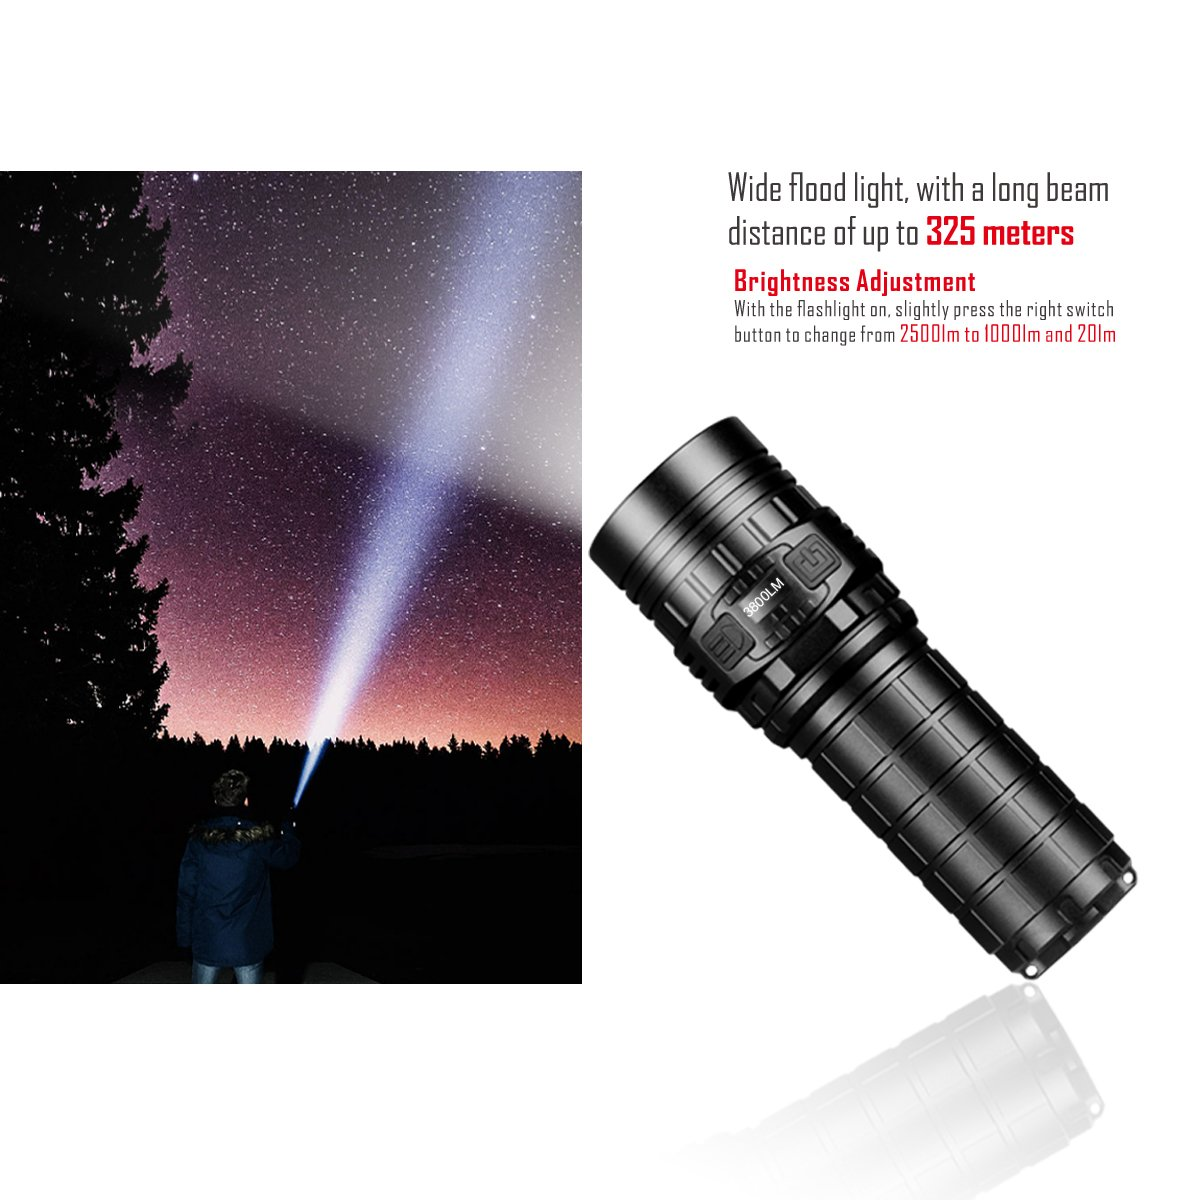 Imalent new DN70 USB rechargeable palm-sized LED flashlight 3800lumens searching light portable floody flashlight with CREE XHP70 LED by IMALENT (Image #5)